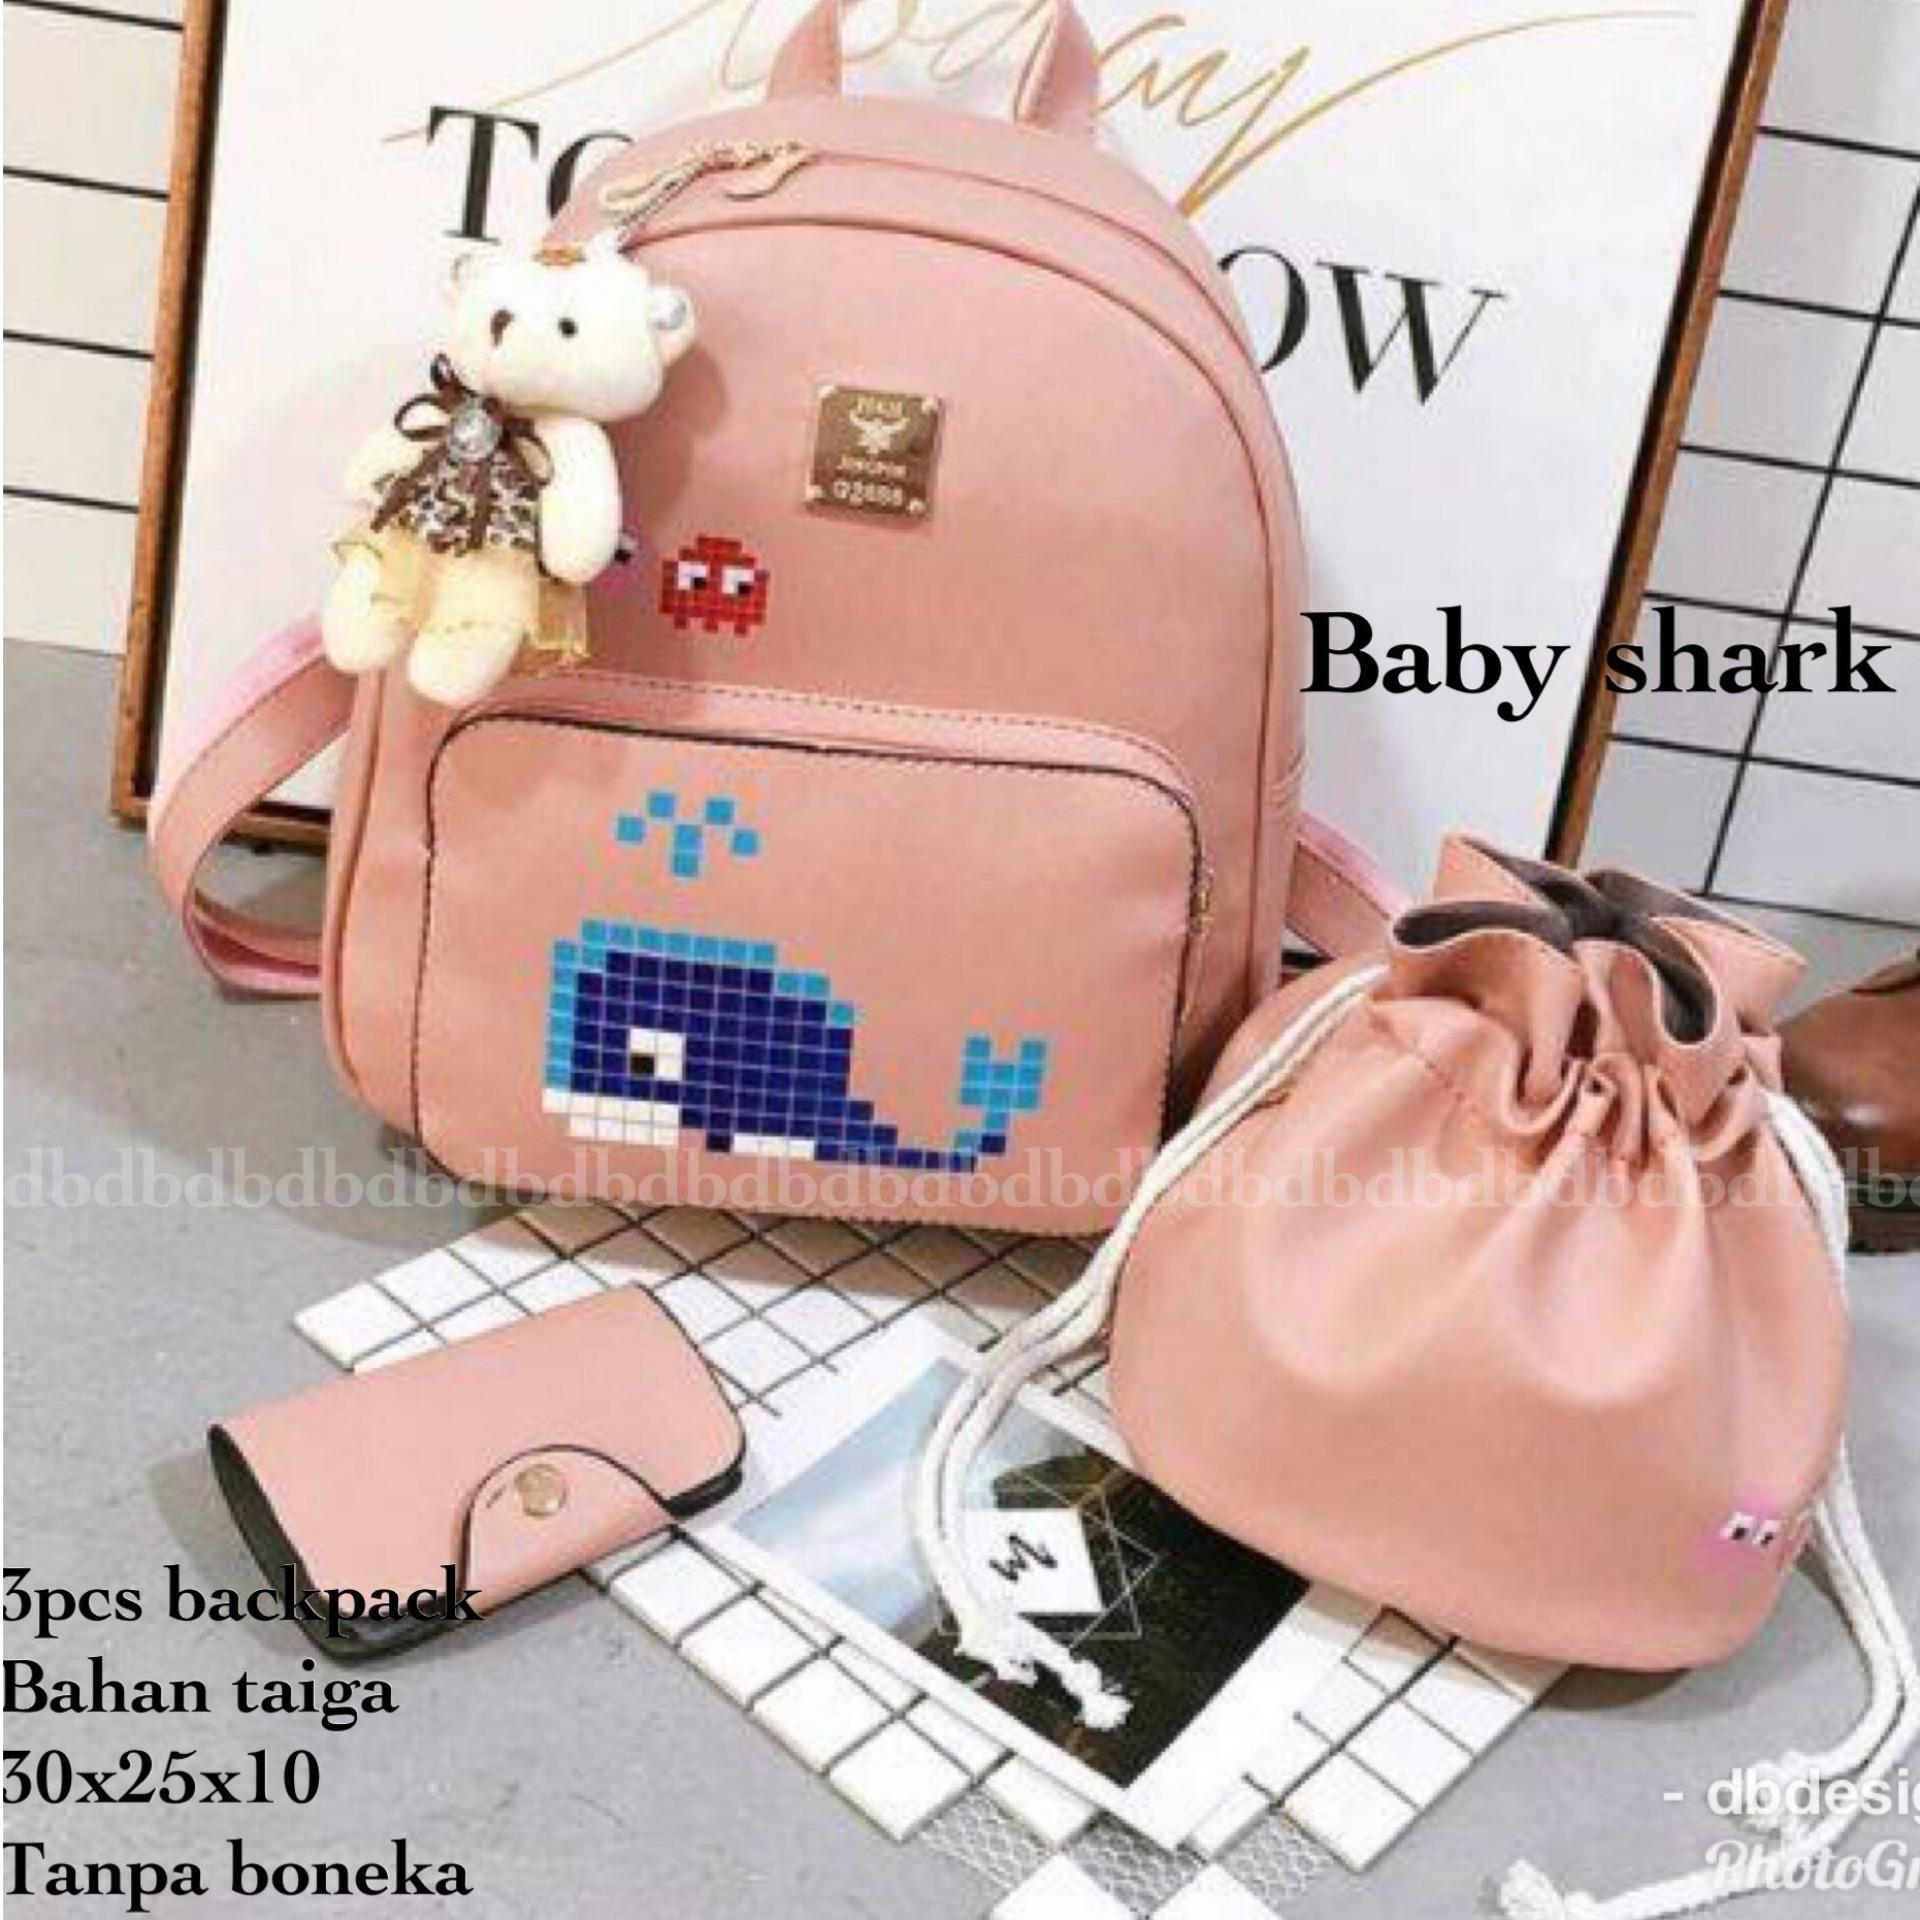 Tas BACKPACK/Ransel/TAS MINI BACKPACK/Tas Anak/Tas 3in1/Tas 4in1/TAS CROS BODY/TAS Drawstring backpack/Tas Messenger/Tas Chanel/Tas Dior/Tas FendI/Tas Louis Vuitton/Tas Prada/Tas Gucci/Tas murah ALL STAR 3PCS BACKPACK BLACK